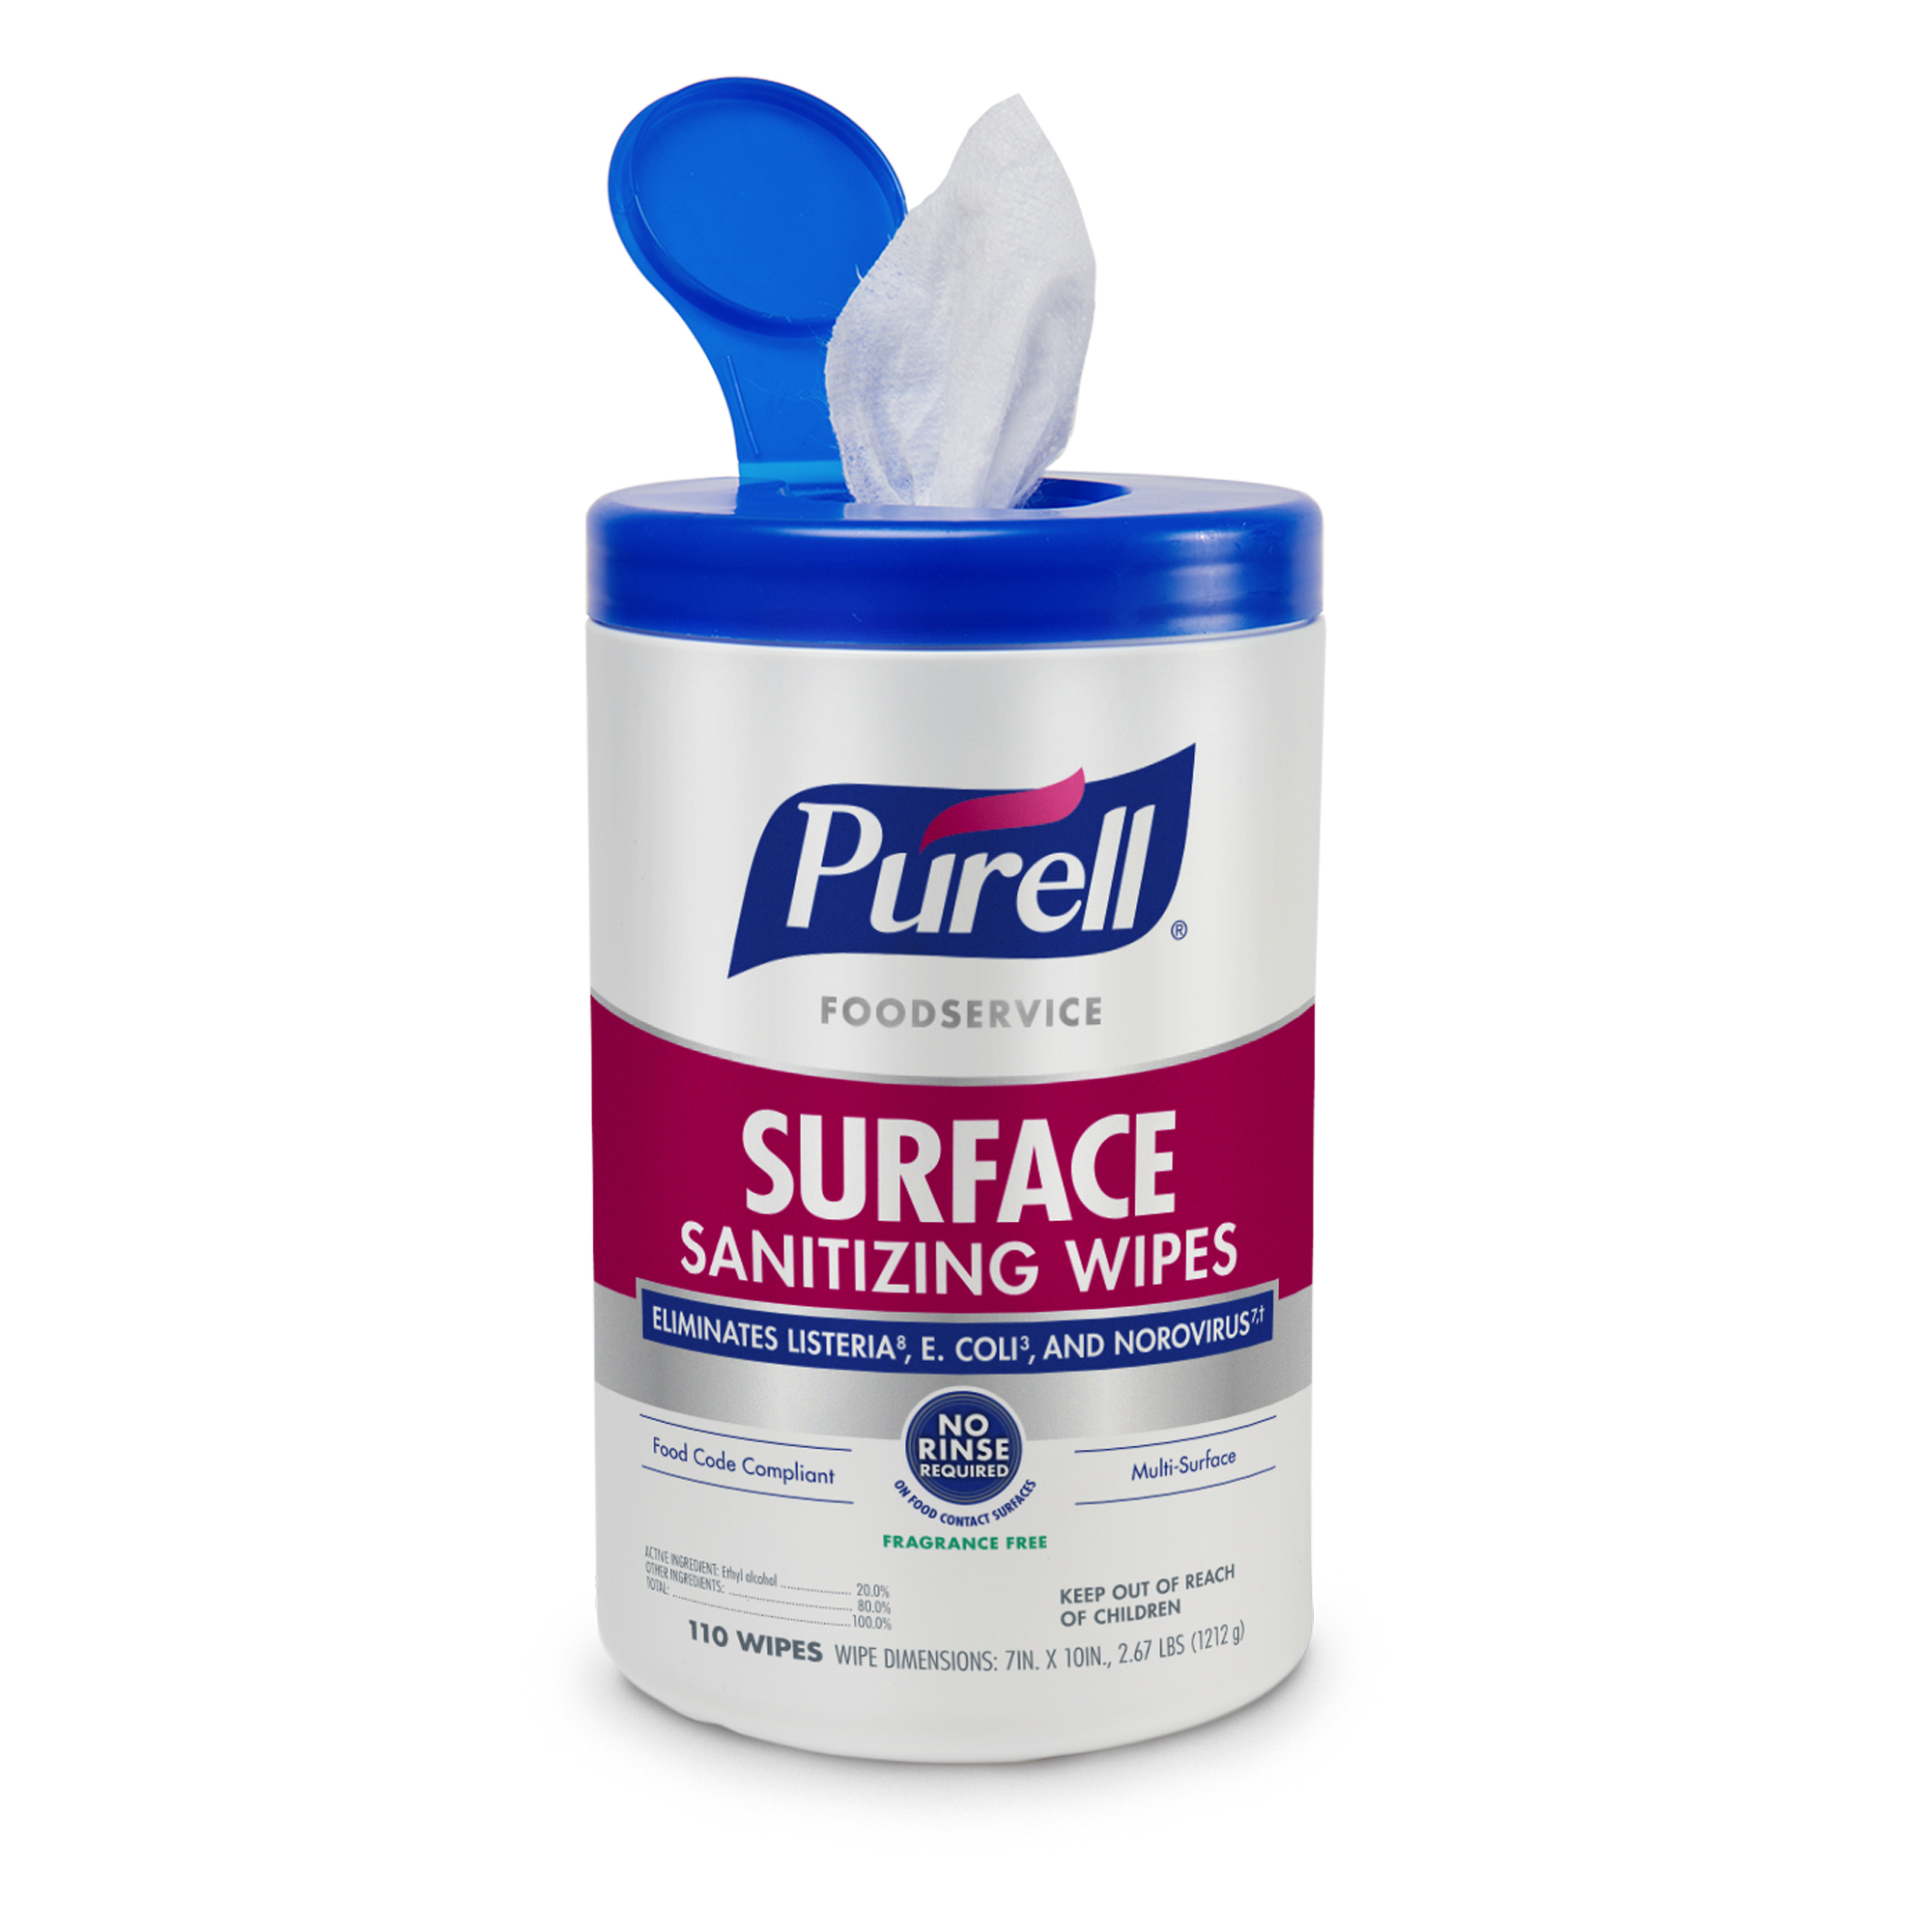 https://campaign-image.com/zohocampaigns/739223000001362871_zc_v16_1621353933381_9341_06_purell_fs_surfacesanitizingwipes_open_f.jpg